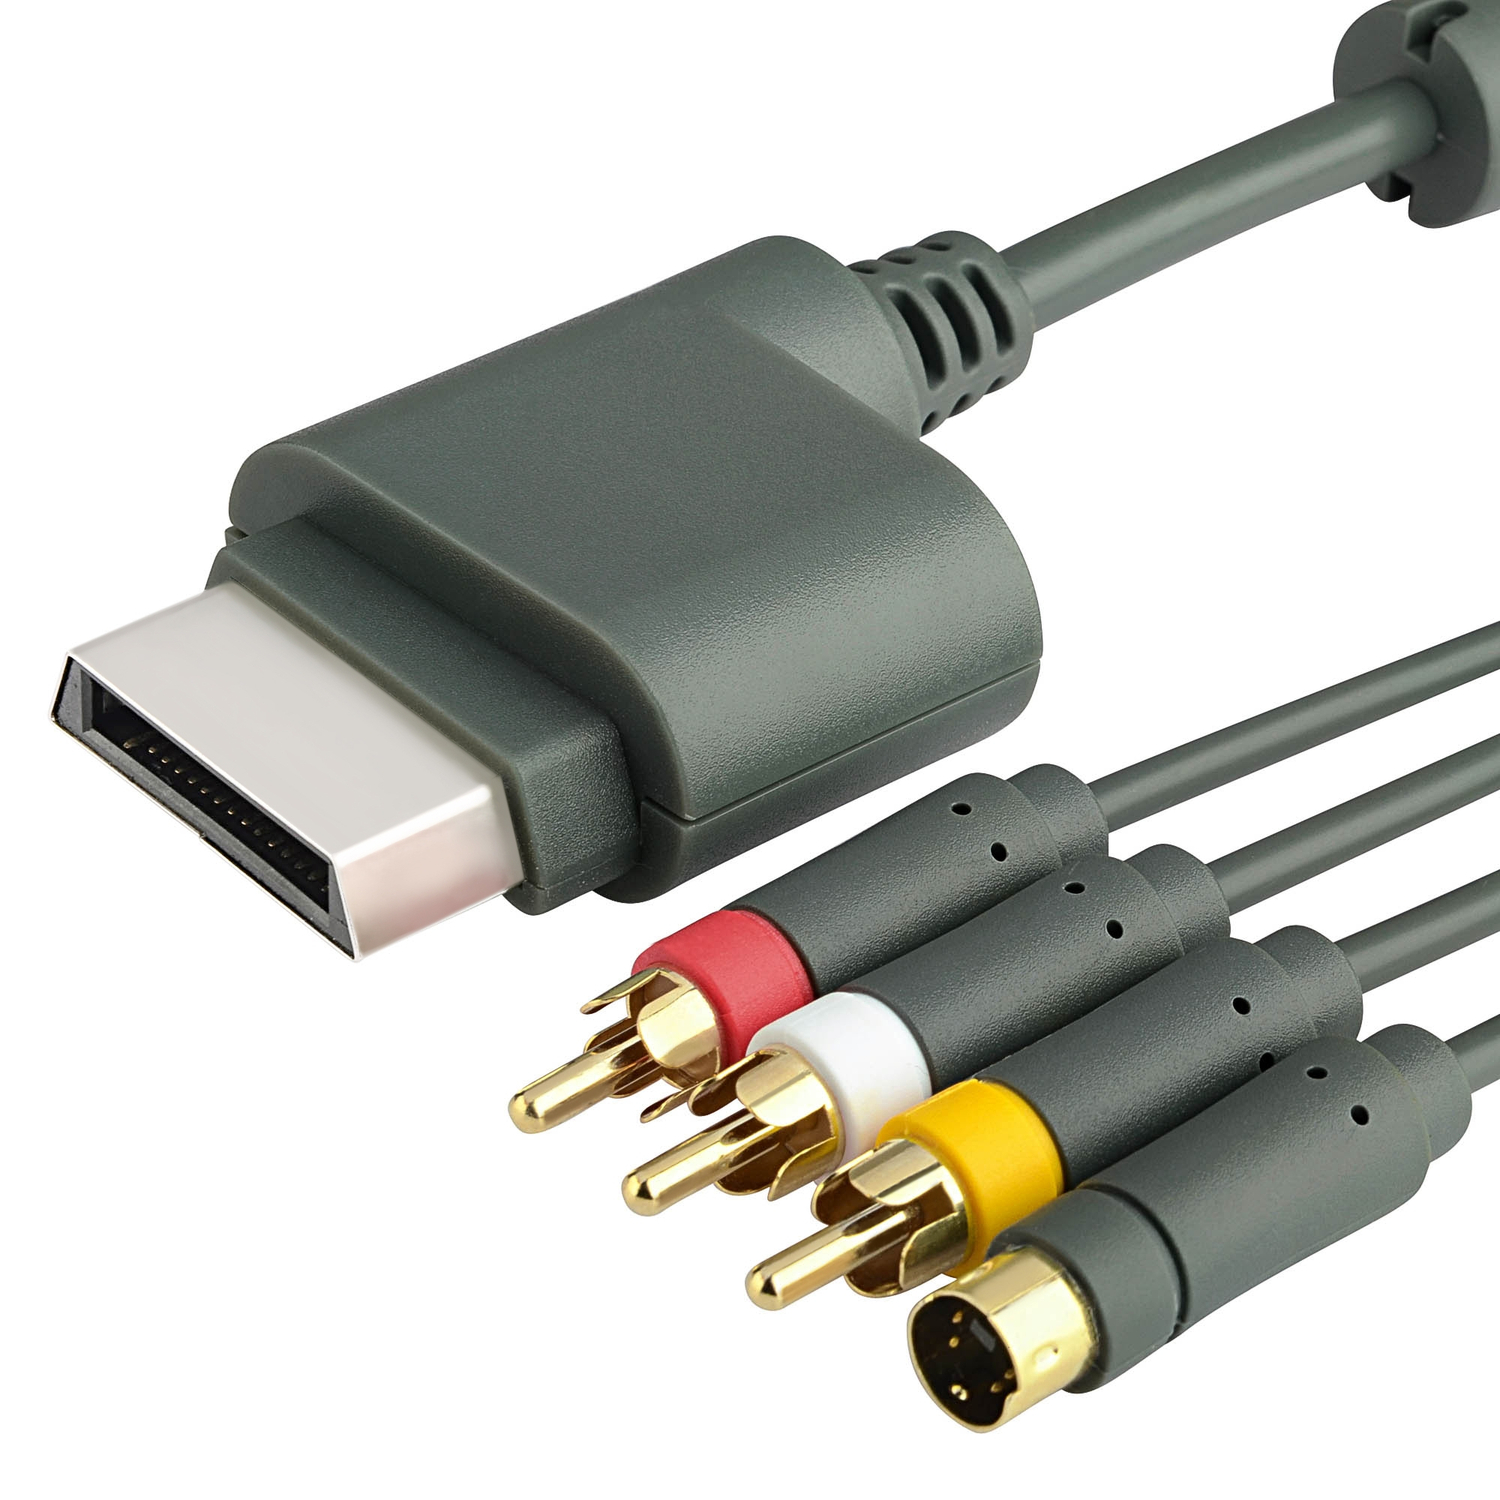 Amazon. Com: new s video composite av rca cable cord for for.